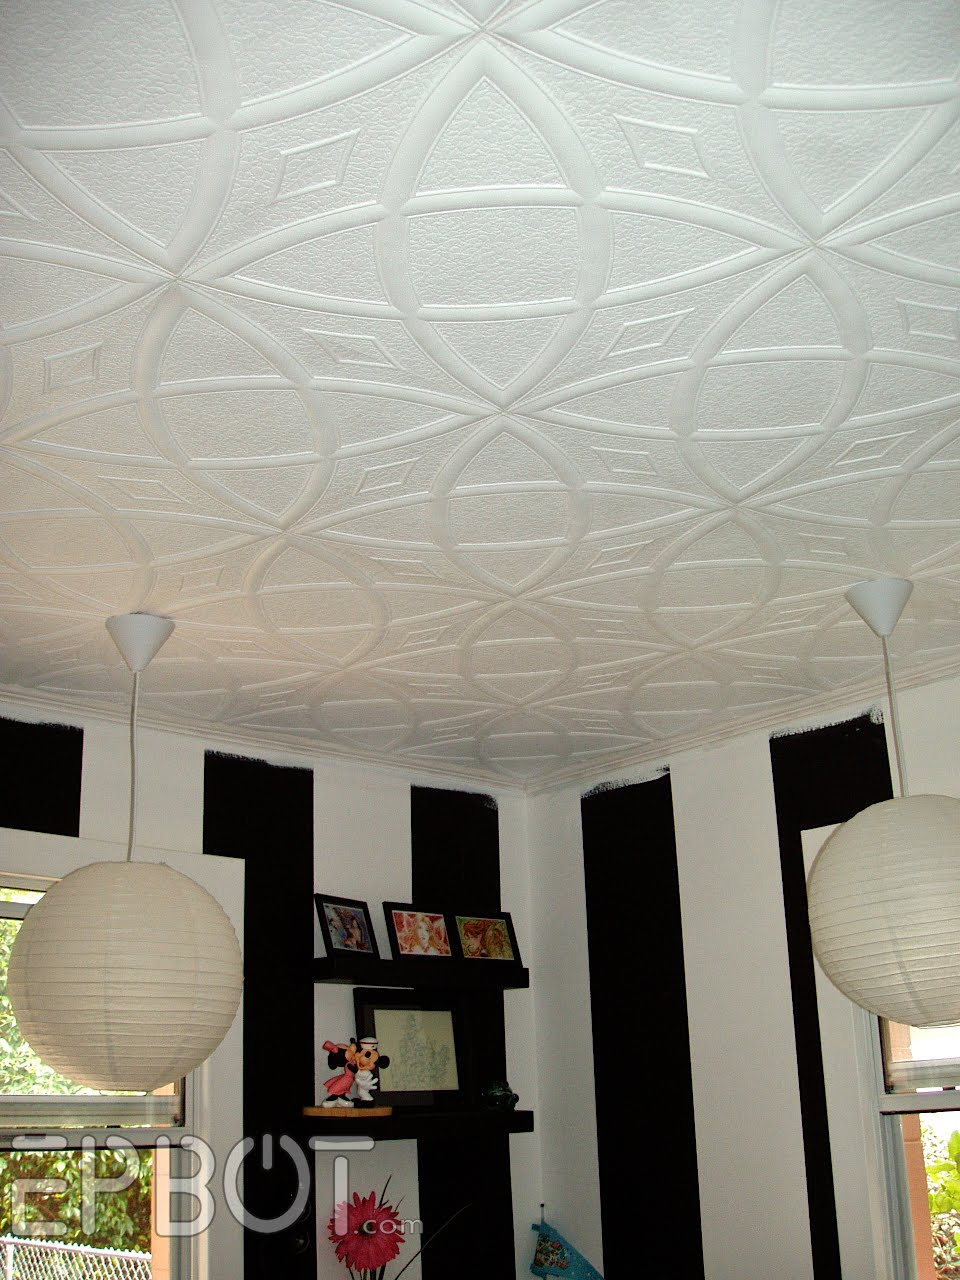 Epbot officially a mess i have to rave about these ceiling tiles for a second theyre made of lightweight foam and simply glue over existing popcorn ceilings fo realz dailygadgetfo Image collections